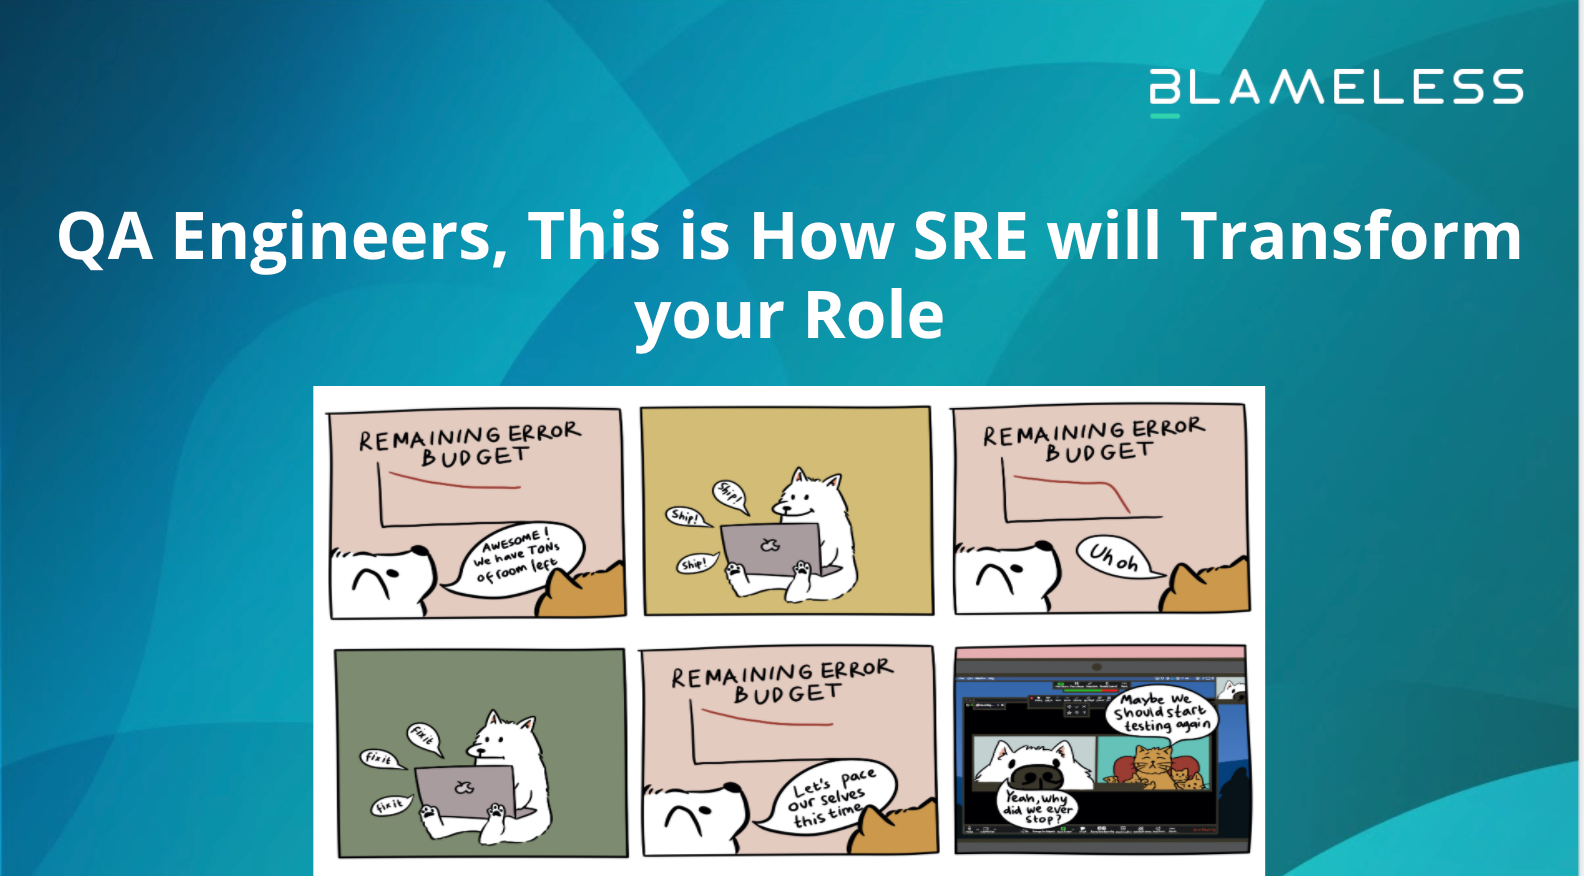 QA Engineers, This is How SRE will Transform your Role